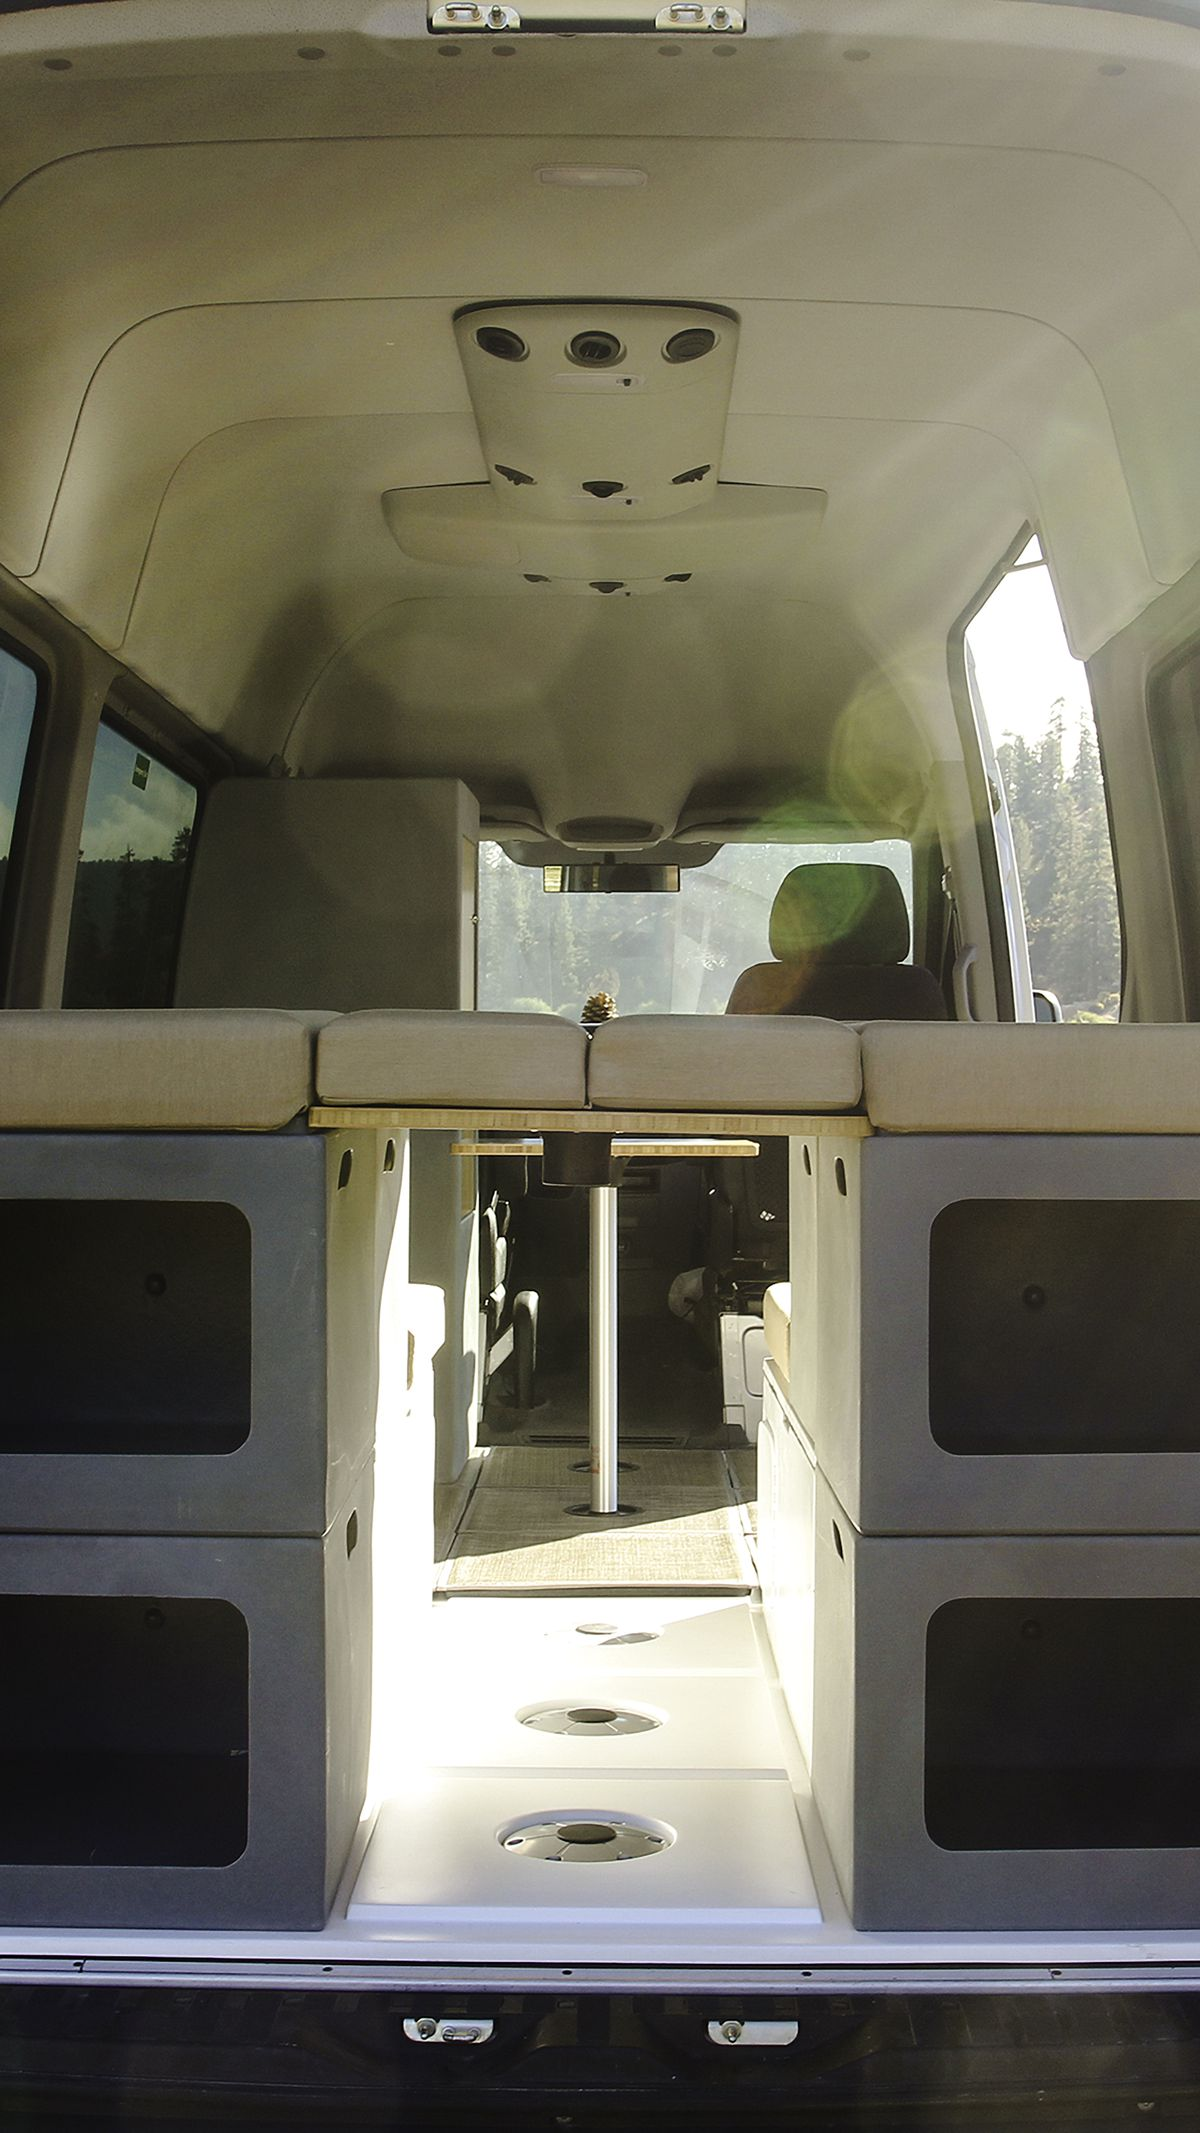 The inside of a camper van features four gray cubes with storage openings stacked together. On top of the cubes is a cushion that works as a bed.